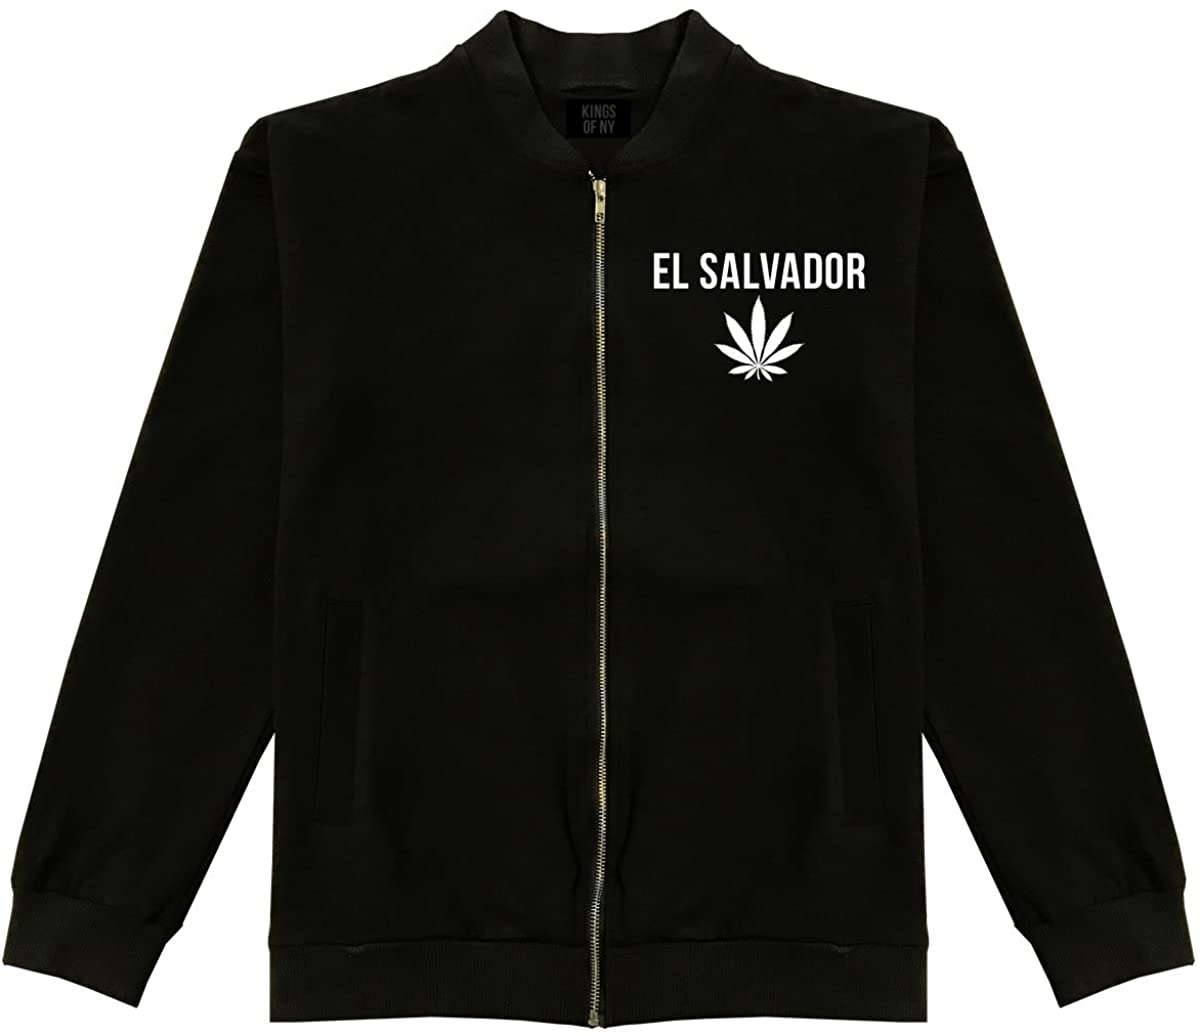 Country of El Salvador Weed Leaf Marijuana Cotton Bomber Jacket